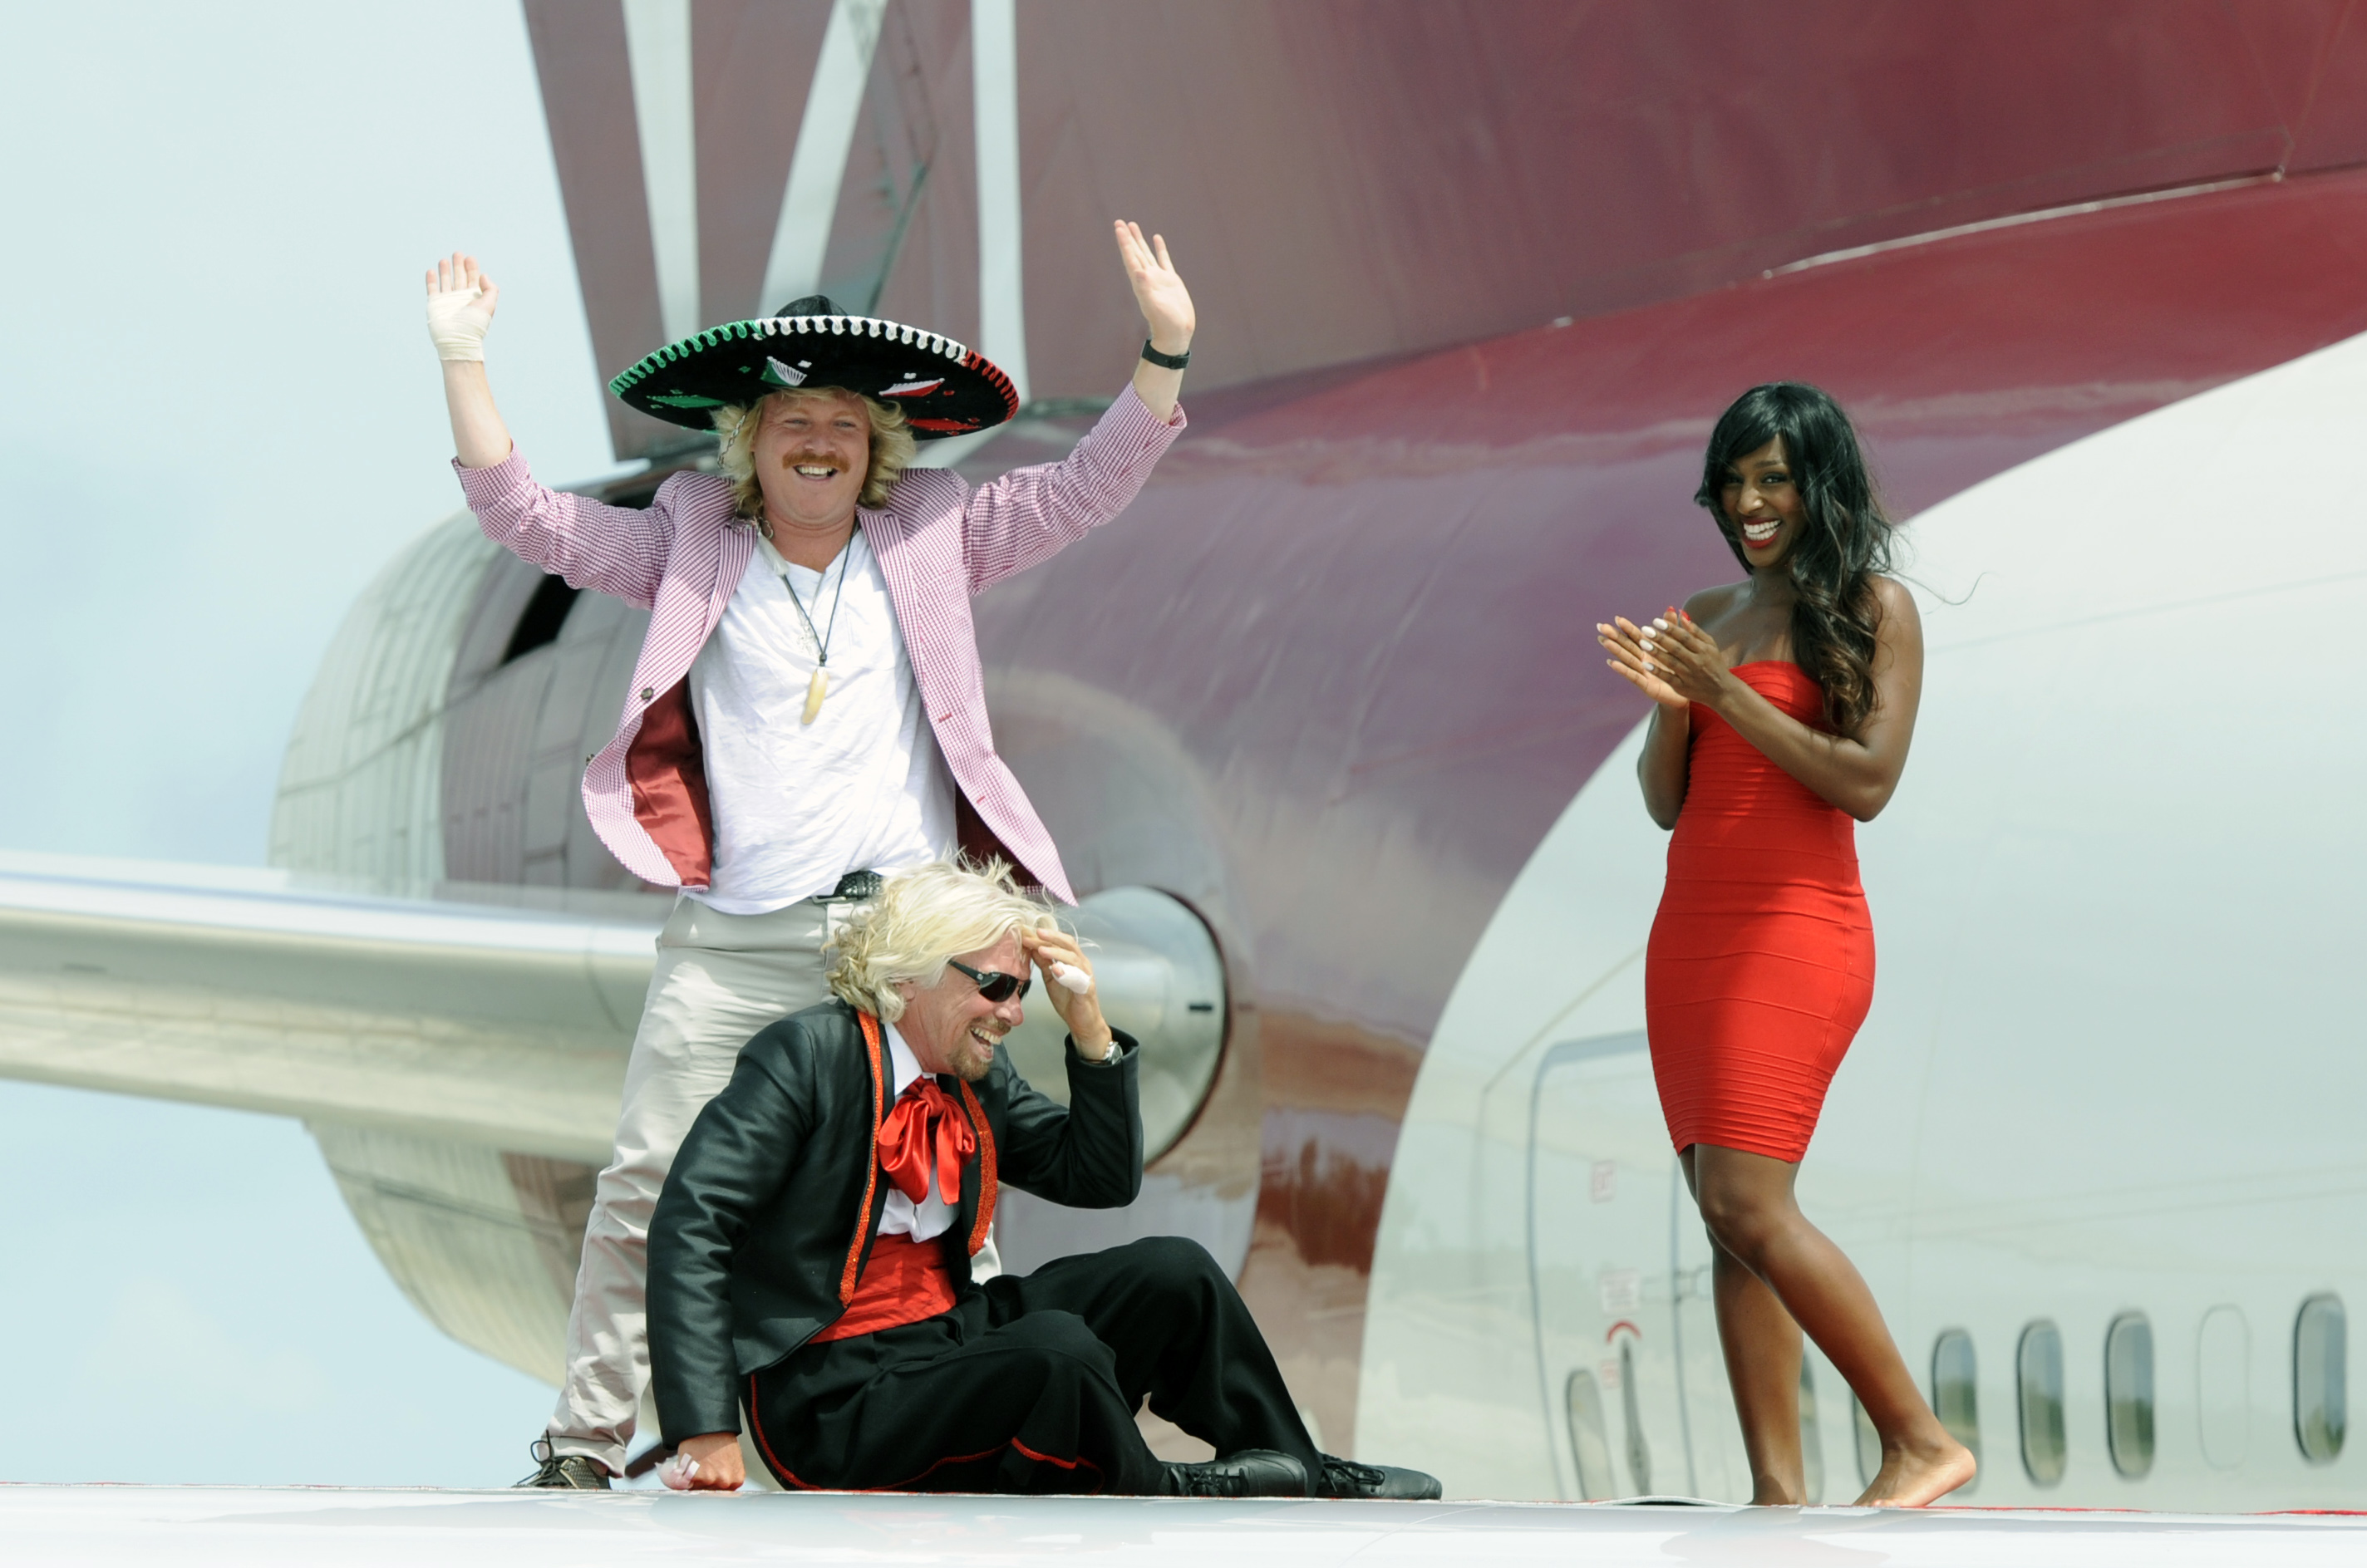 Richard Branson, Keith Lemon & Alexandra Burke touch down in Cancun!